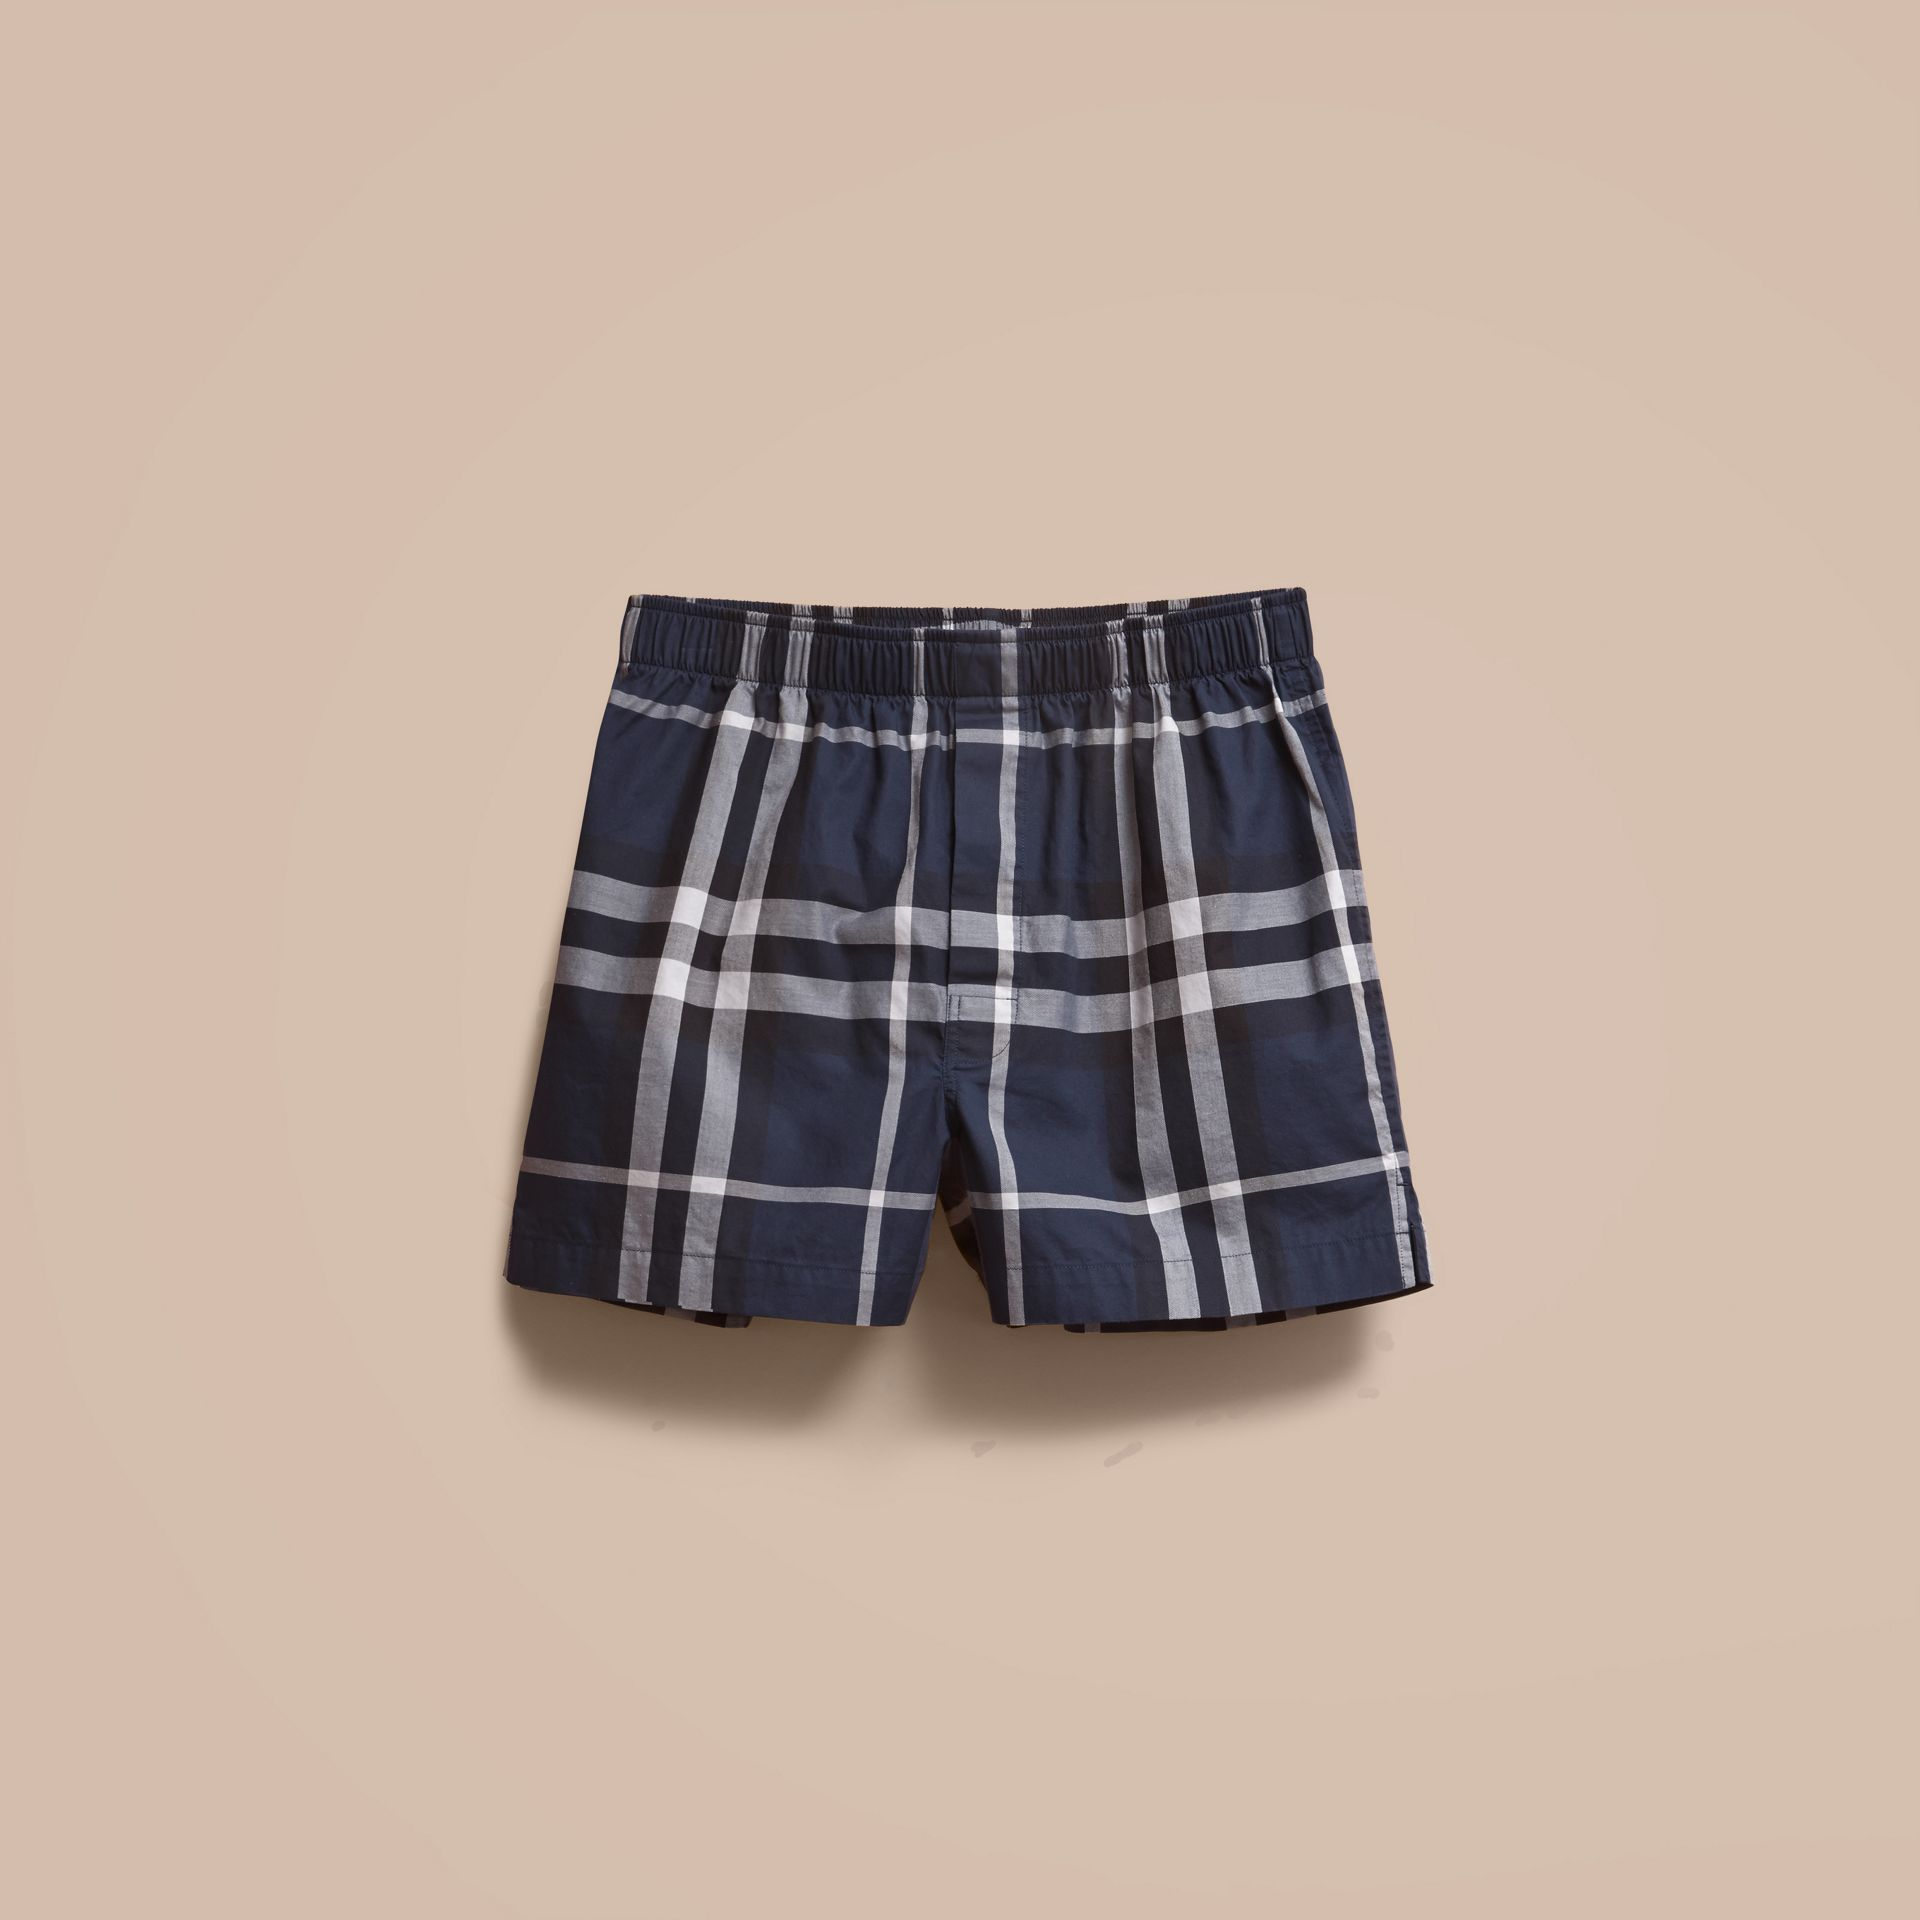 Navy check Check Twill Cotton Boxer Shorts Navy - gallery image 4